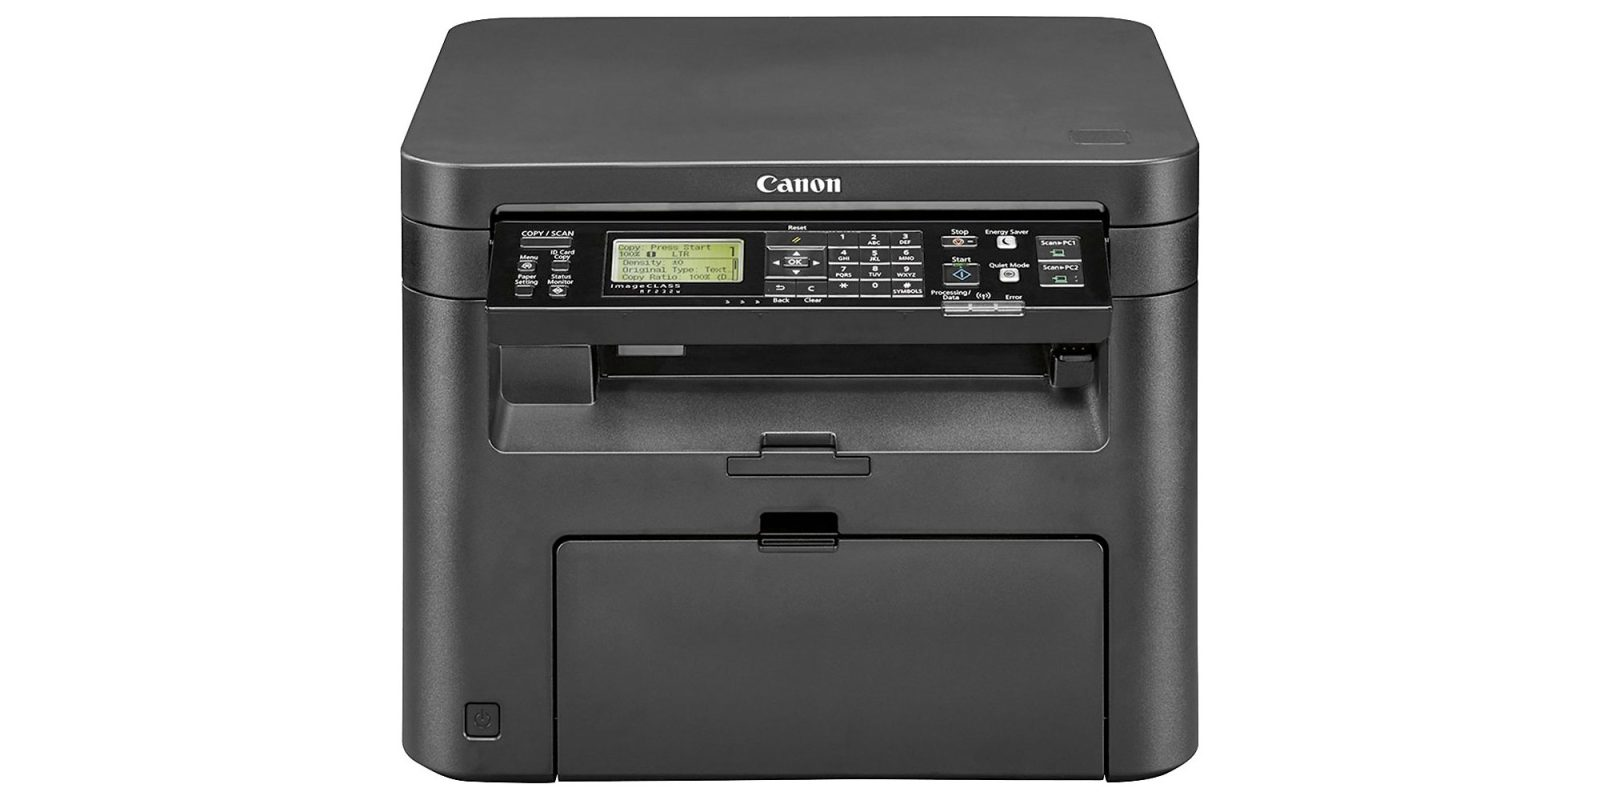 For $99, Canon's AirPrint-enabled AiO laser printer is a must for college